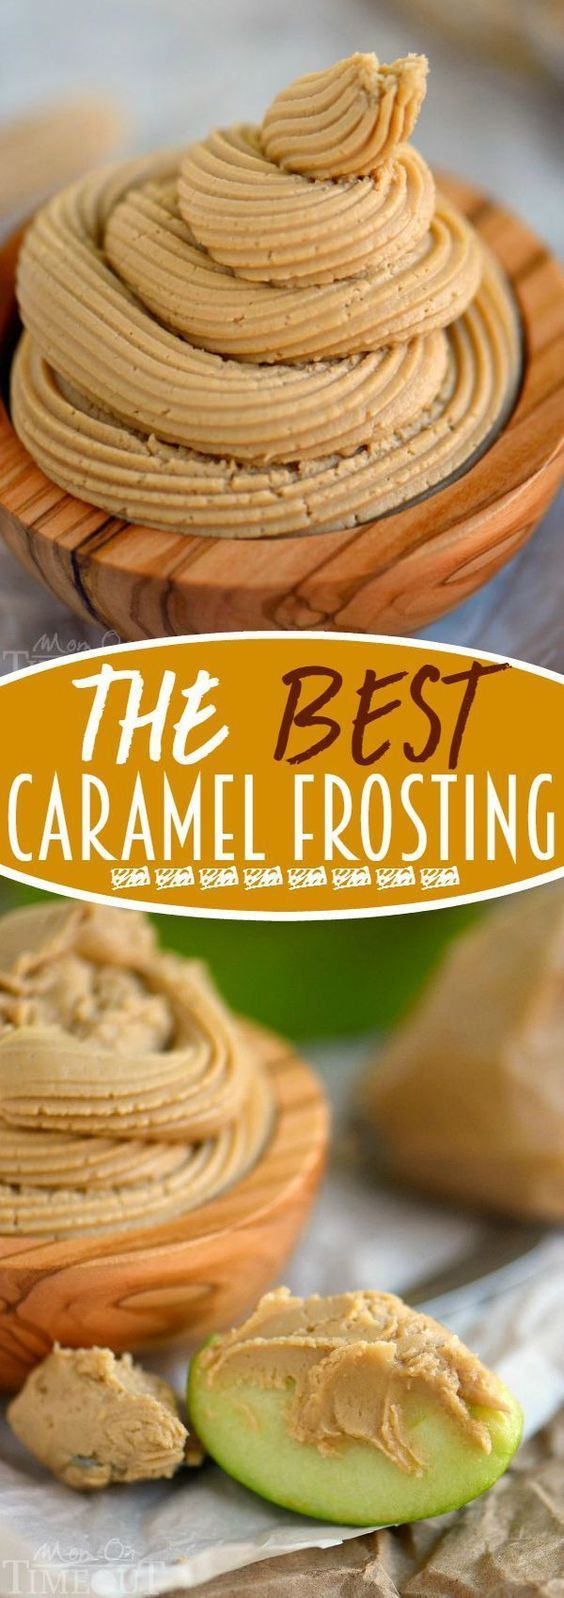 The BEST Caramel Frosting - you're going to want this on everything so go ahead and DOUBLE the recipe! Perfect for cakes cupcakes bread apples and more! | eBay